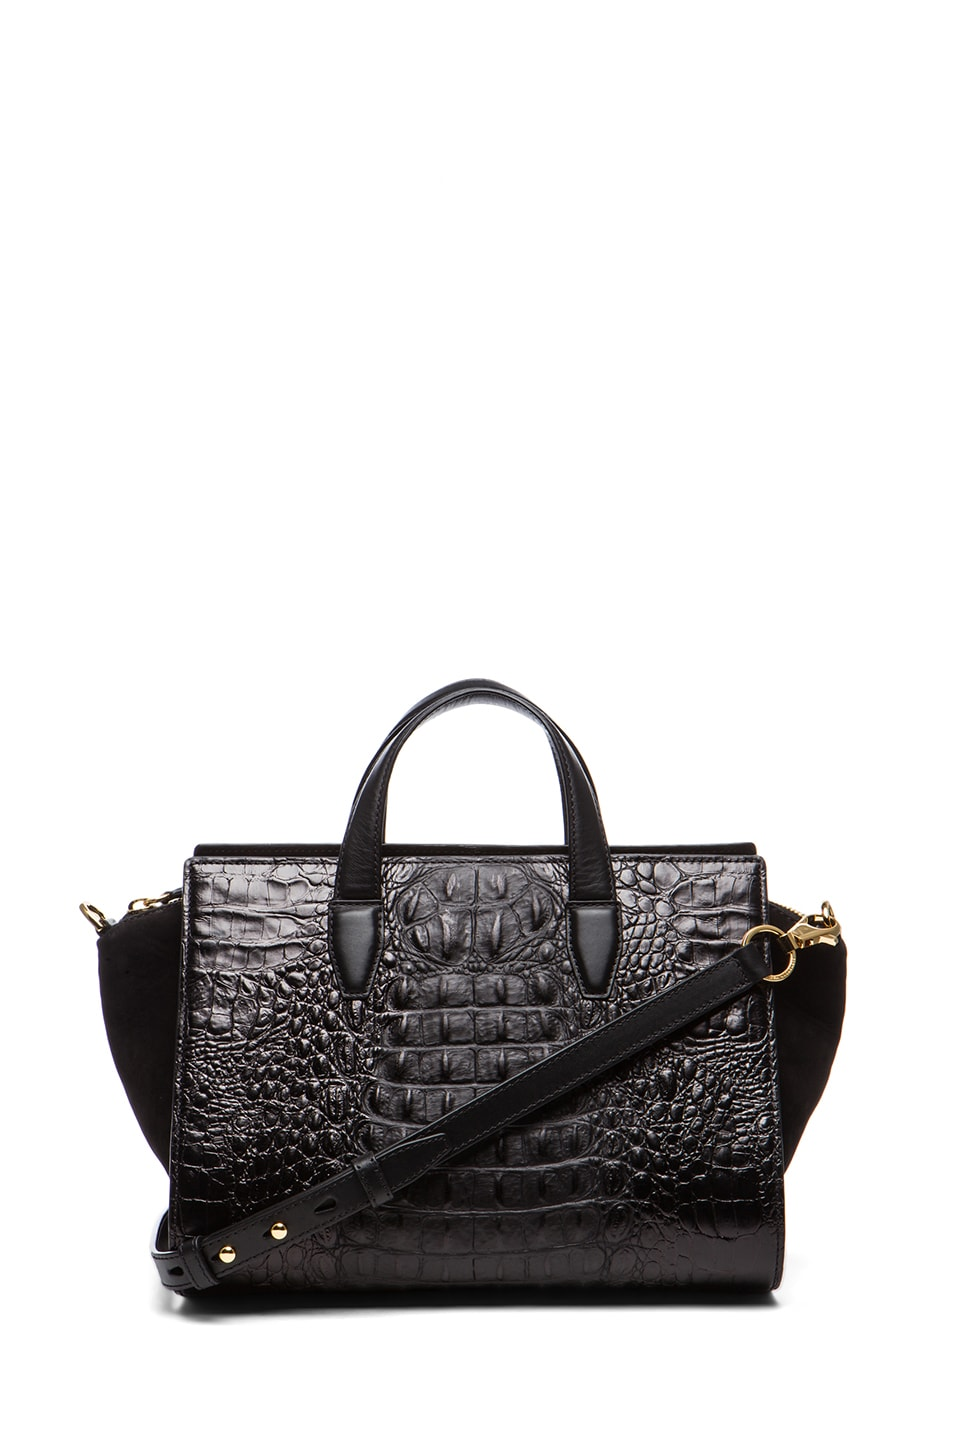 Image 1 of Alexander Wang Pelican Satchel with Yellow Gold in Black